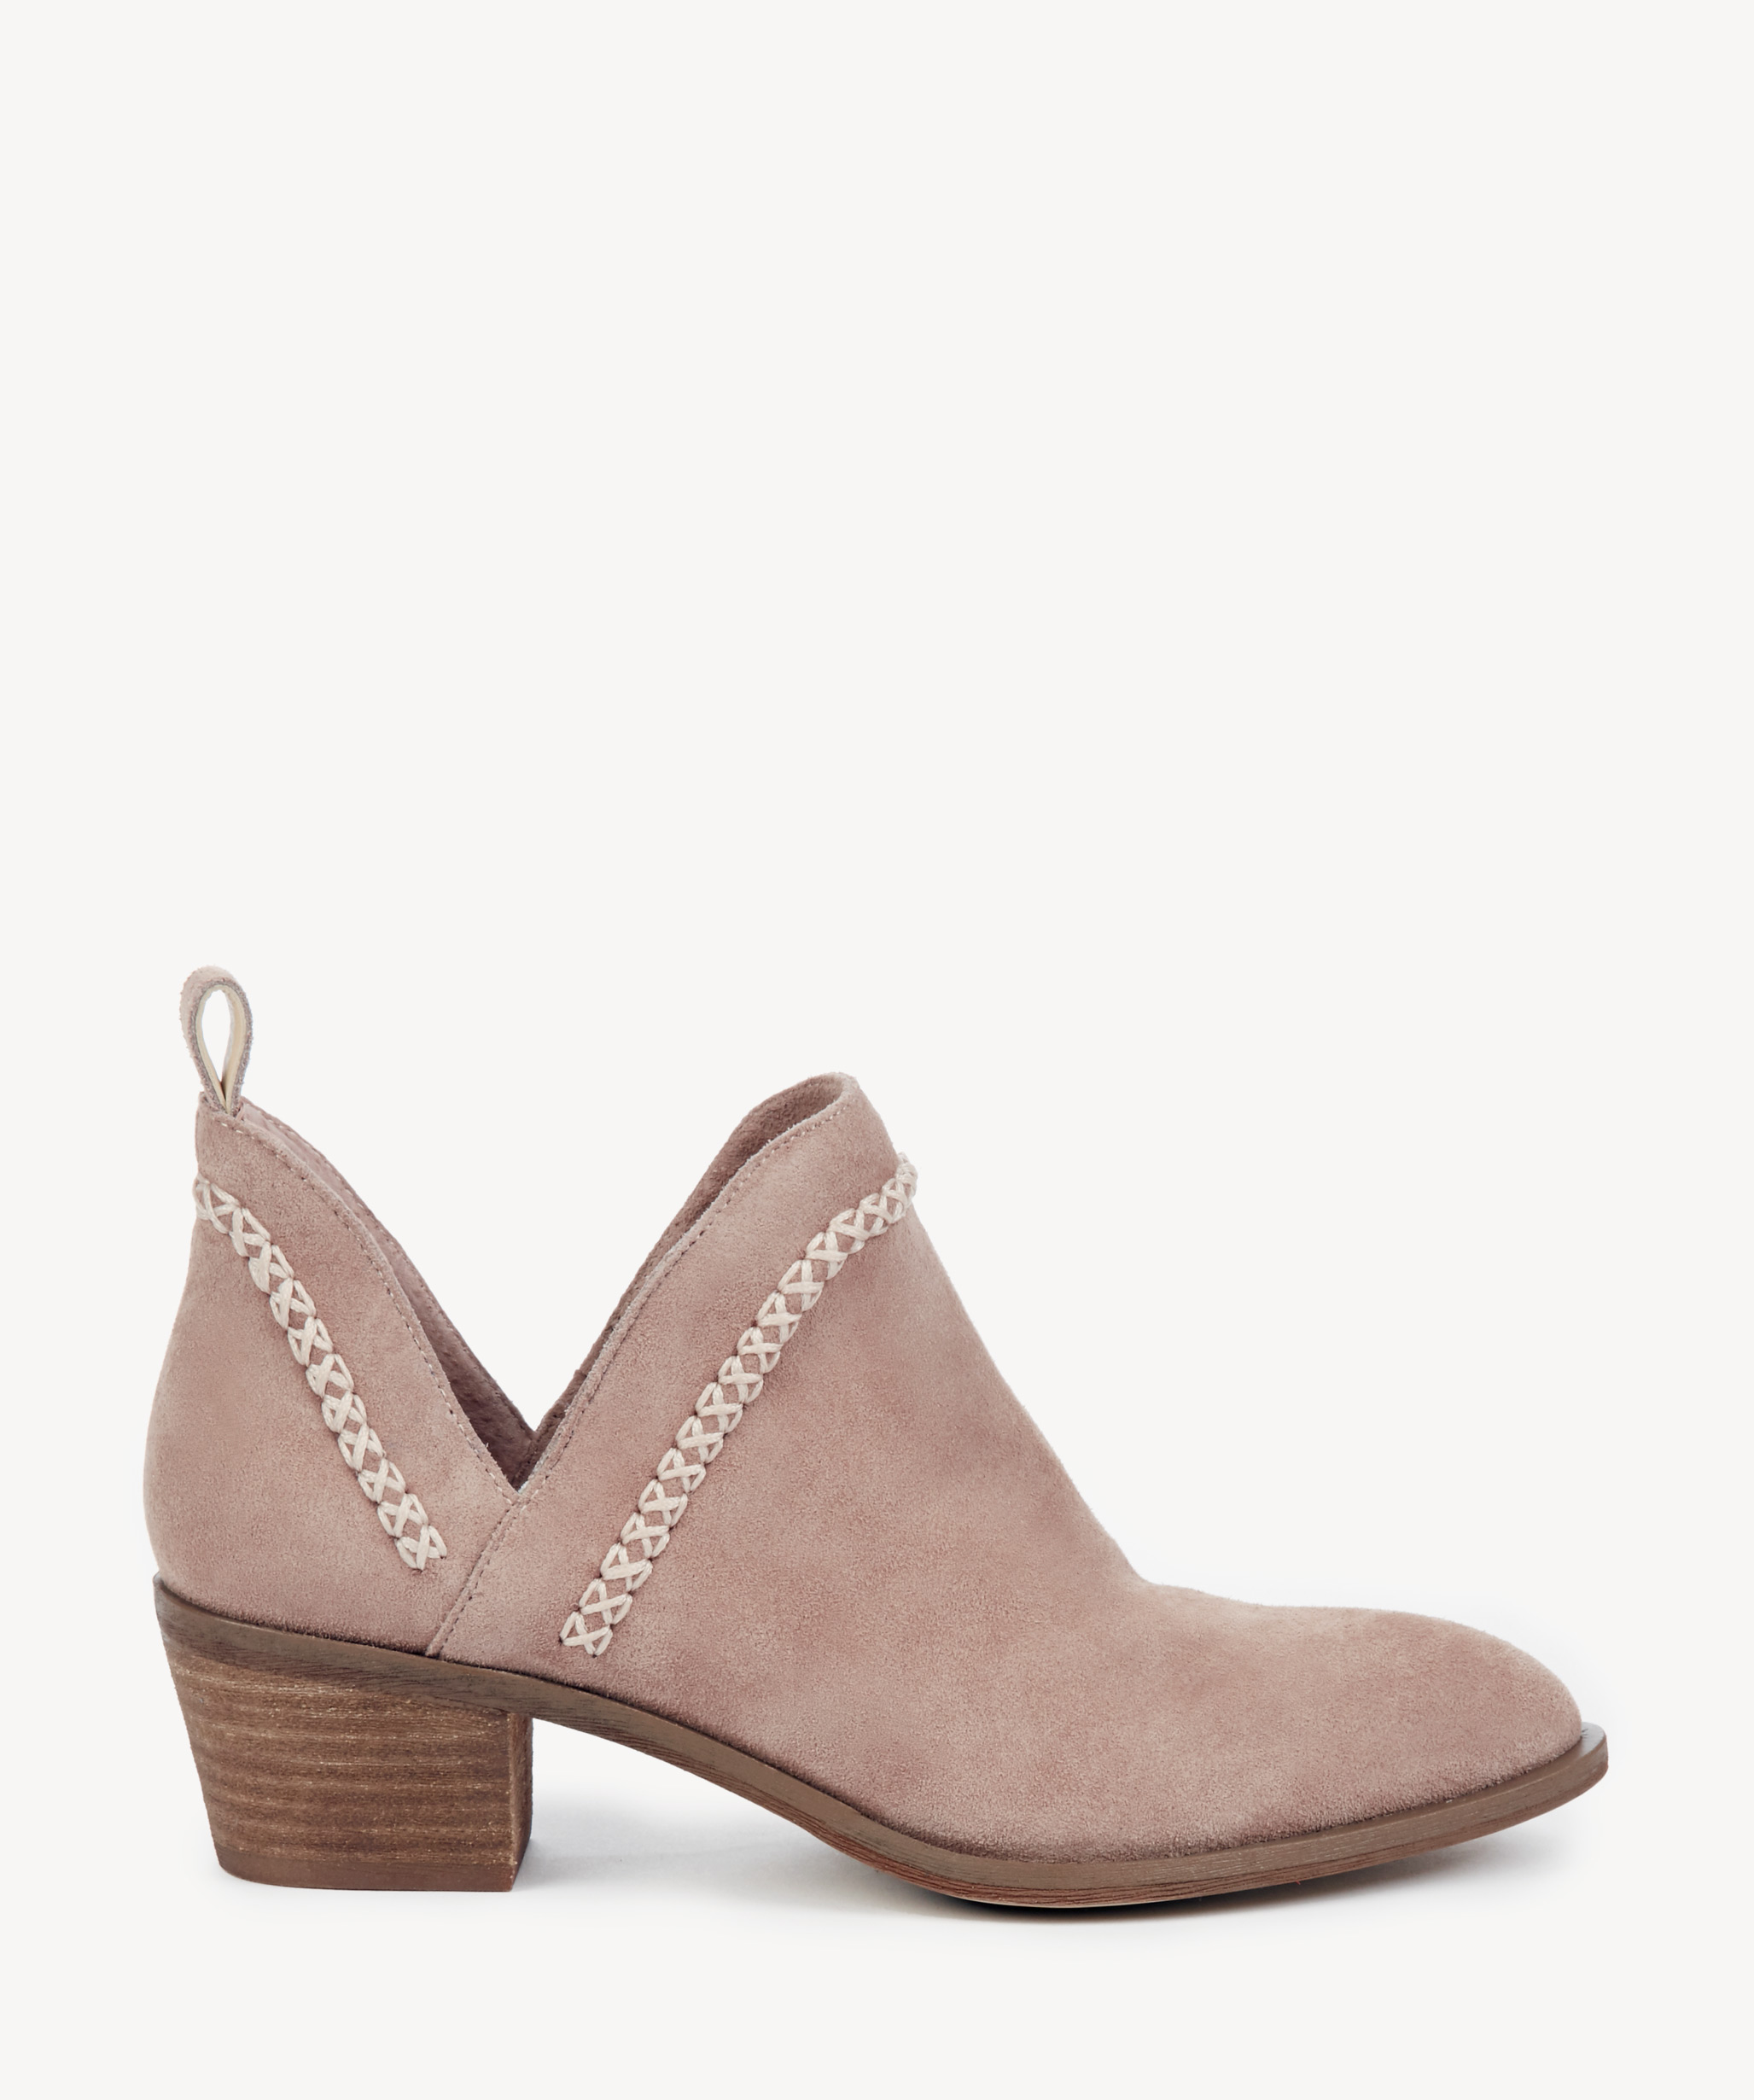 eb6775b93c3 Sole Society Nikkie Braided Bootie Dusty Rose